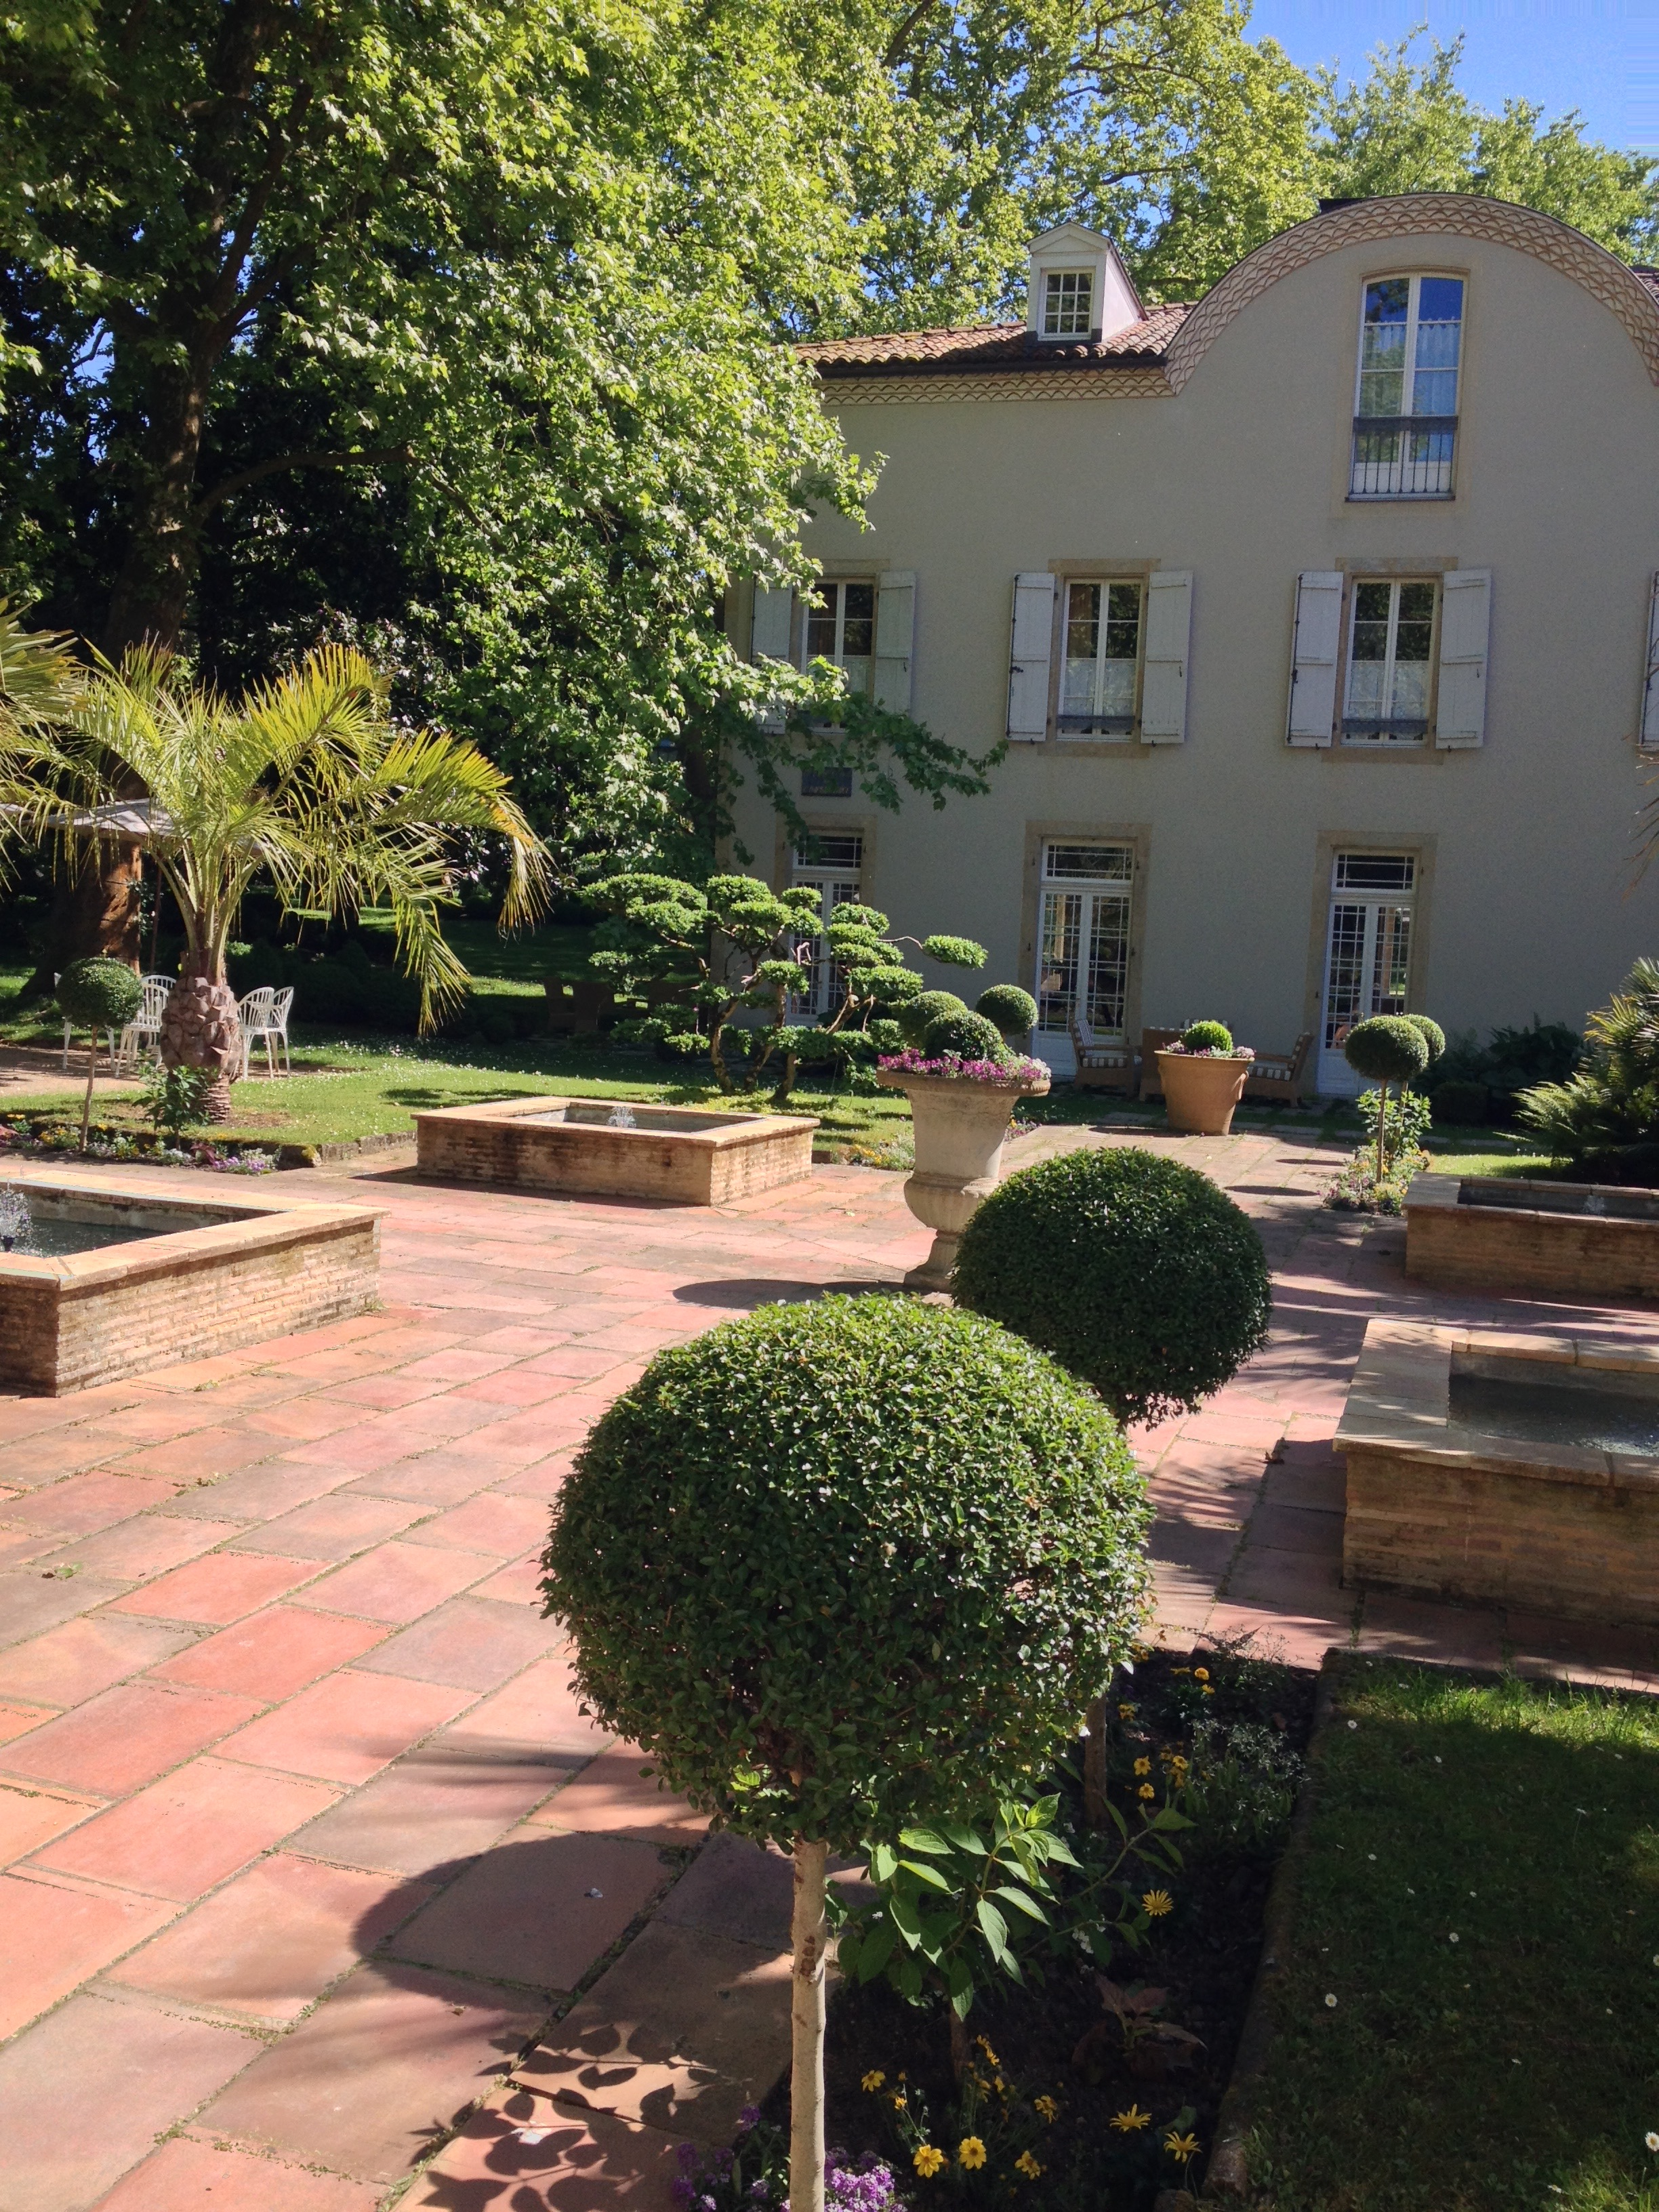 Les Pres d'Eugenie: three-star Michelin luxury hotel and spa